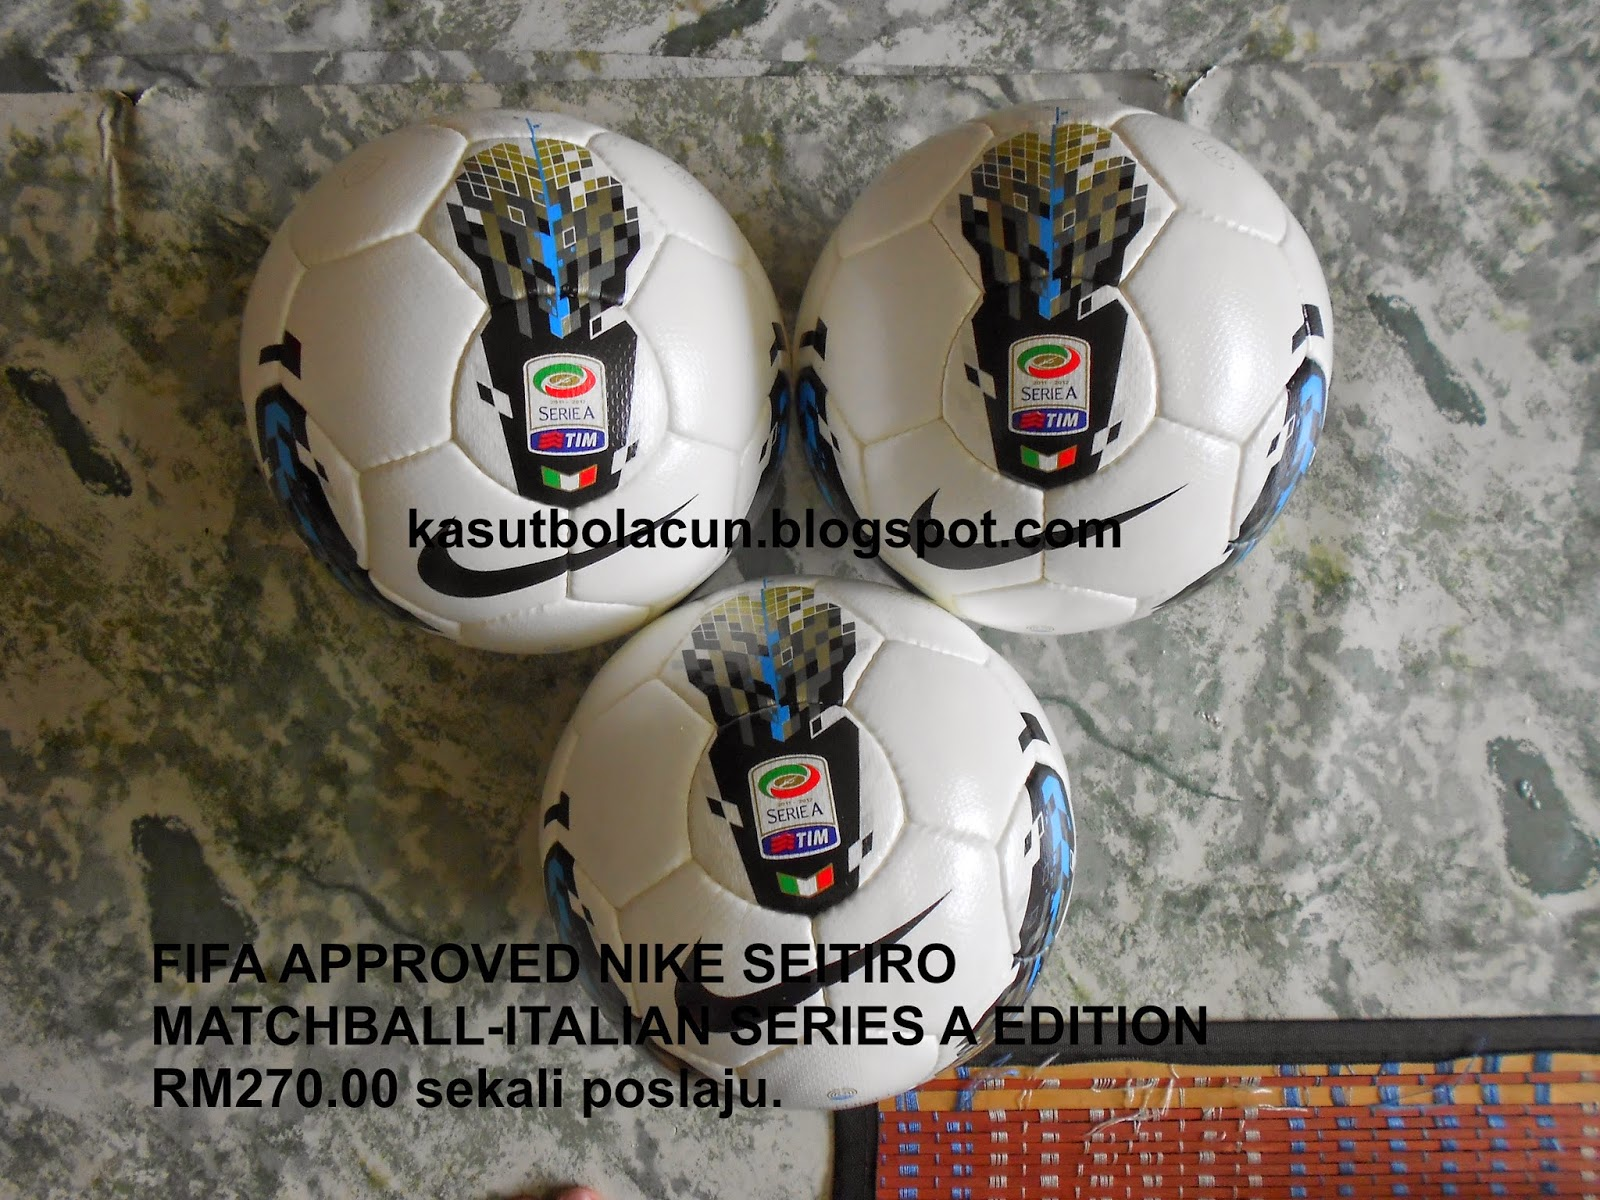 FIFA APPROVED NIKE SEITIRO MATCHBALL-ITALIAN SERIES A EDTION